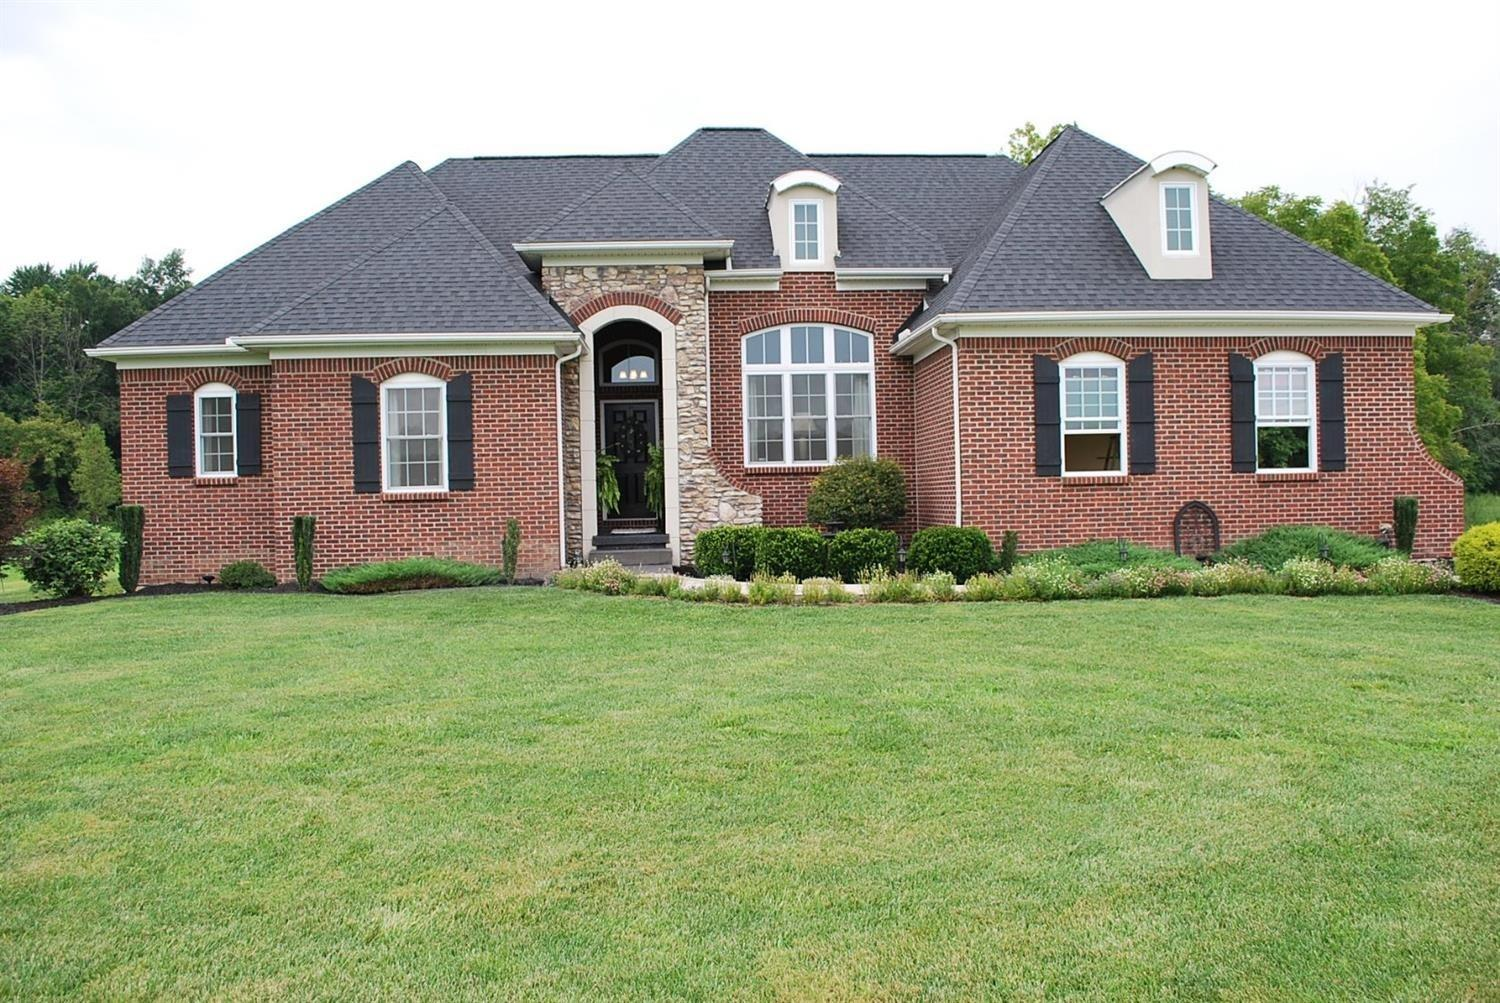 3452 Hunter Creek Rd Wayne Twp. (Clermont Co.), OH